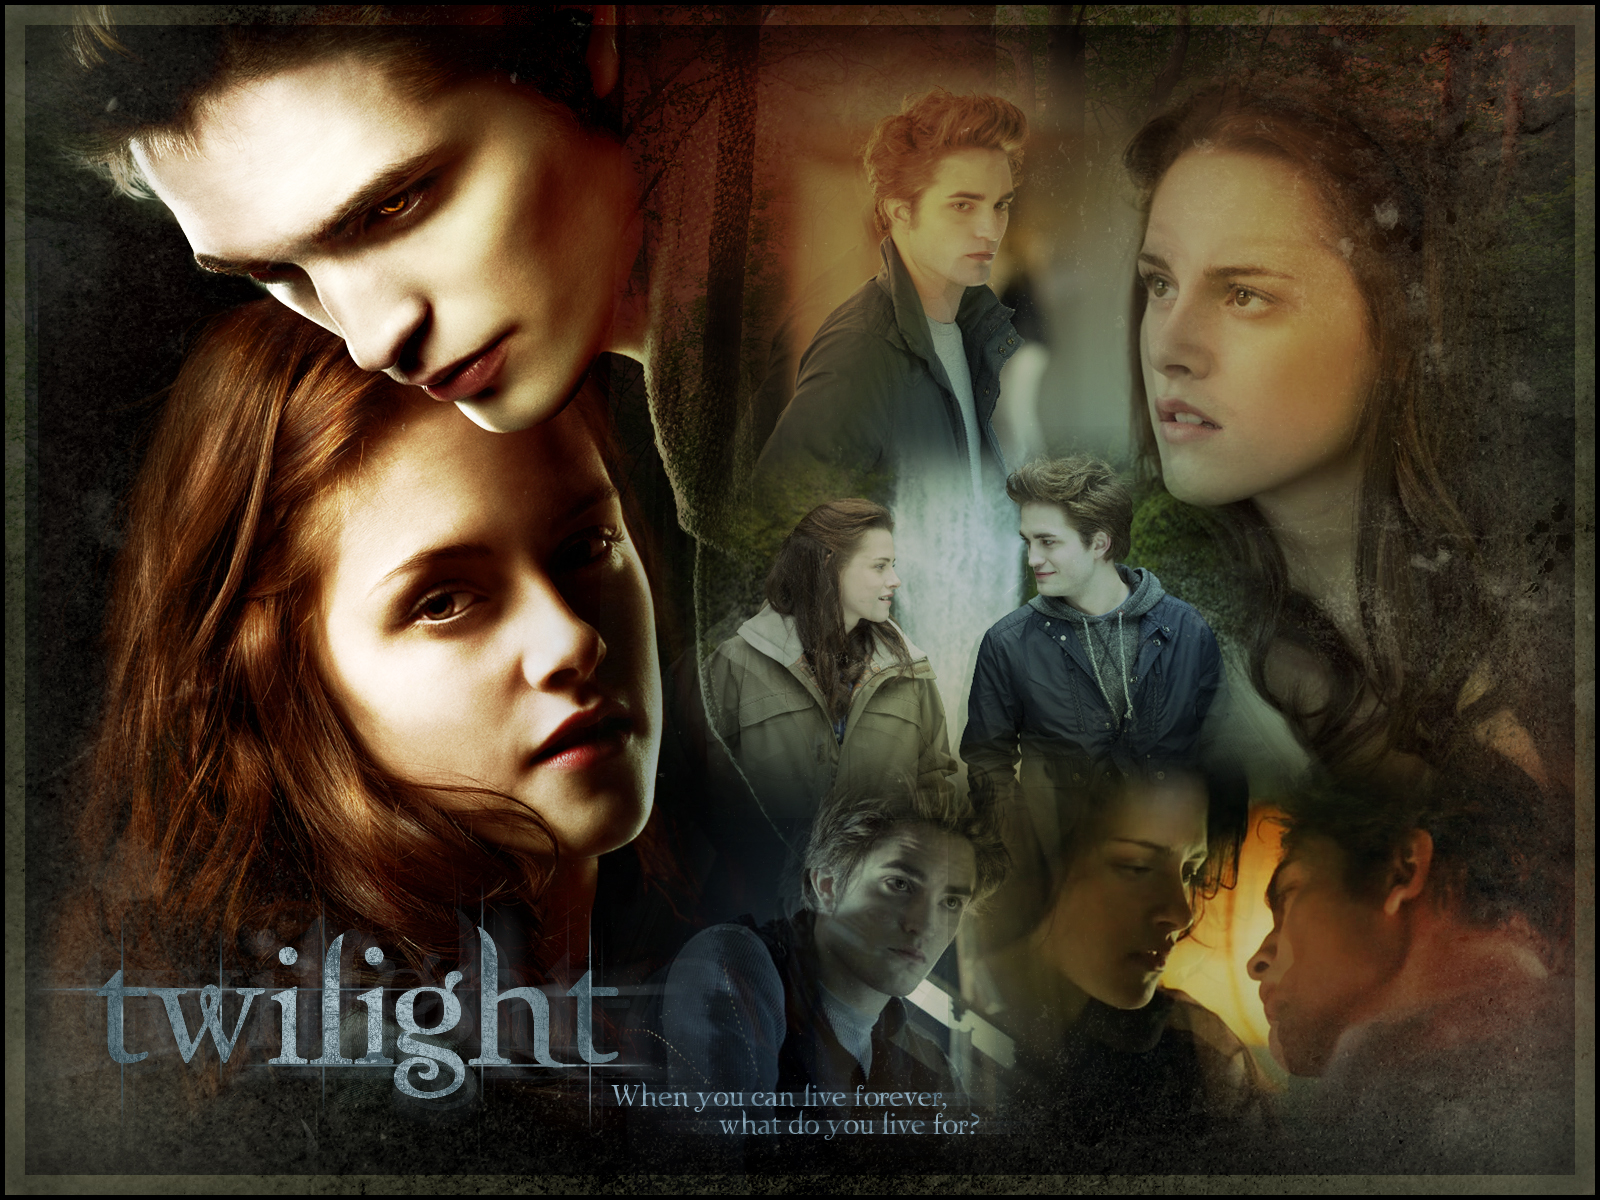 Twilight wallpaper by xky03 on deviantart twilight wallpaper by xky03 twilight wallpaper by xky03 voltagebd Choice Image